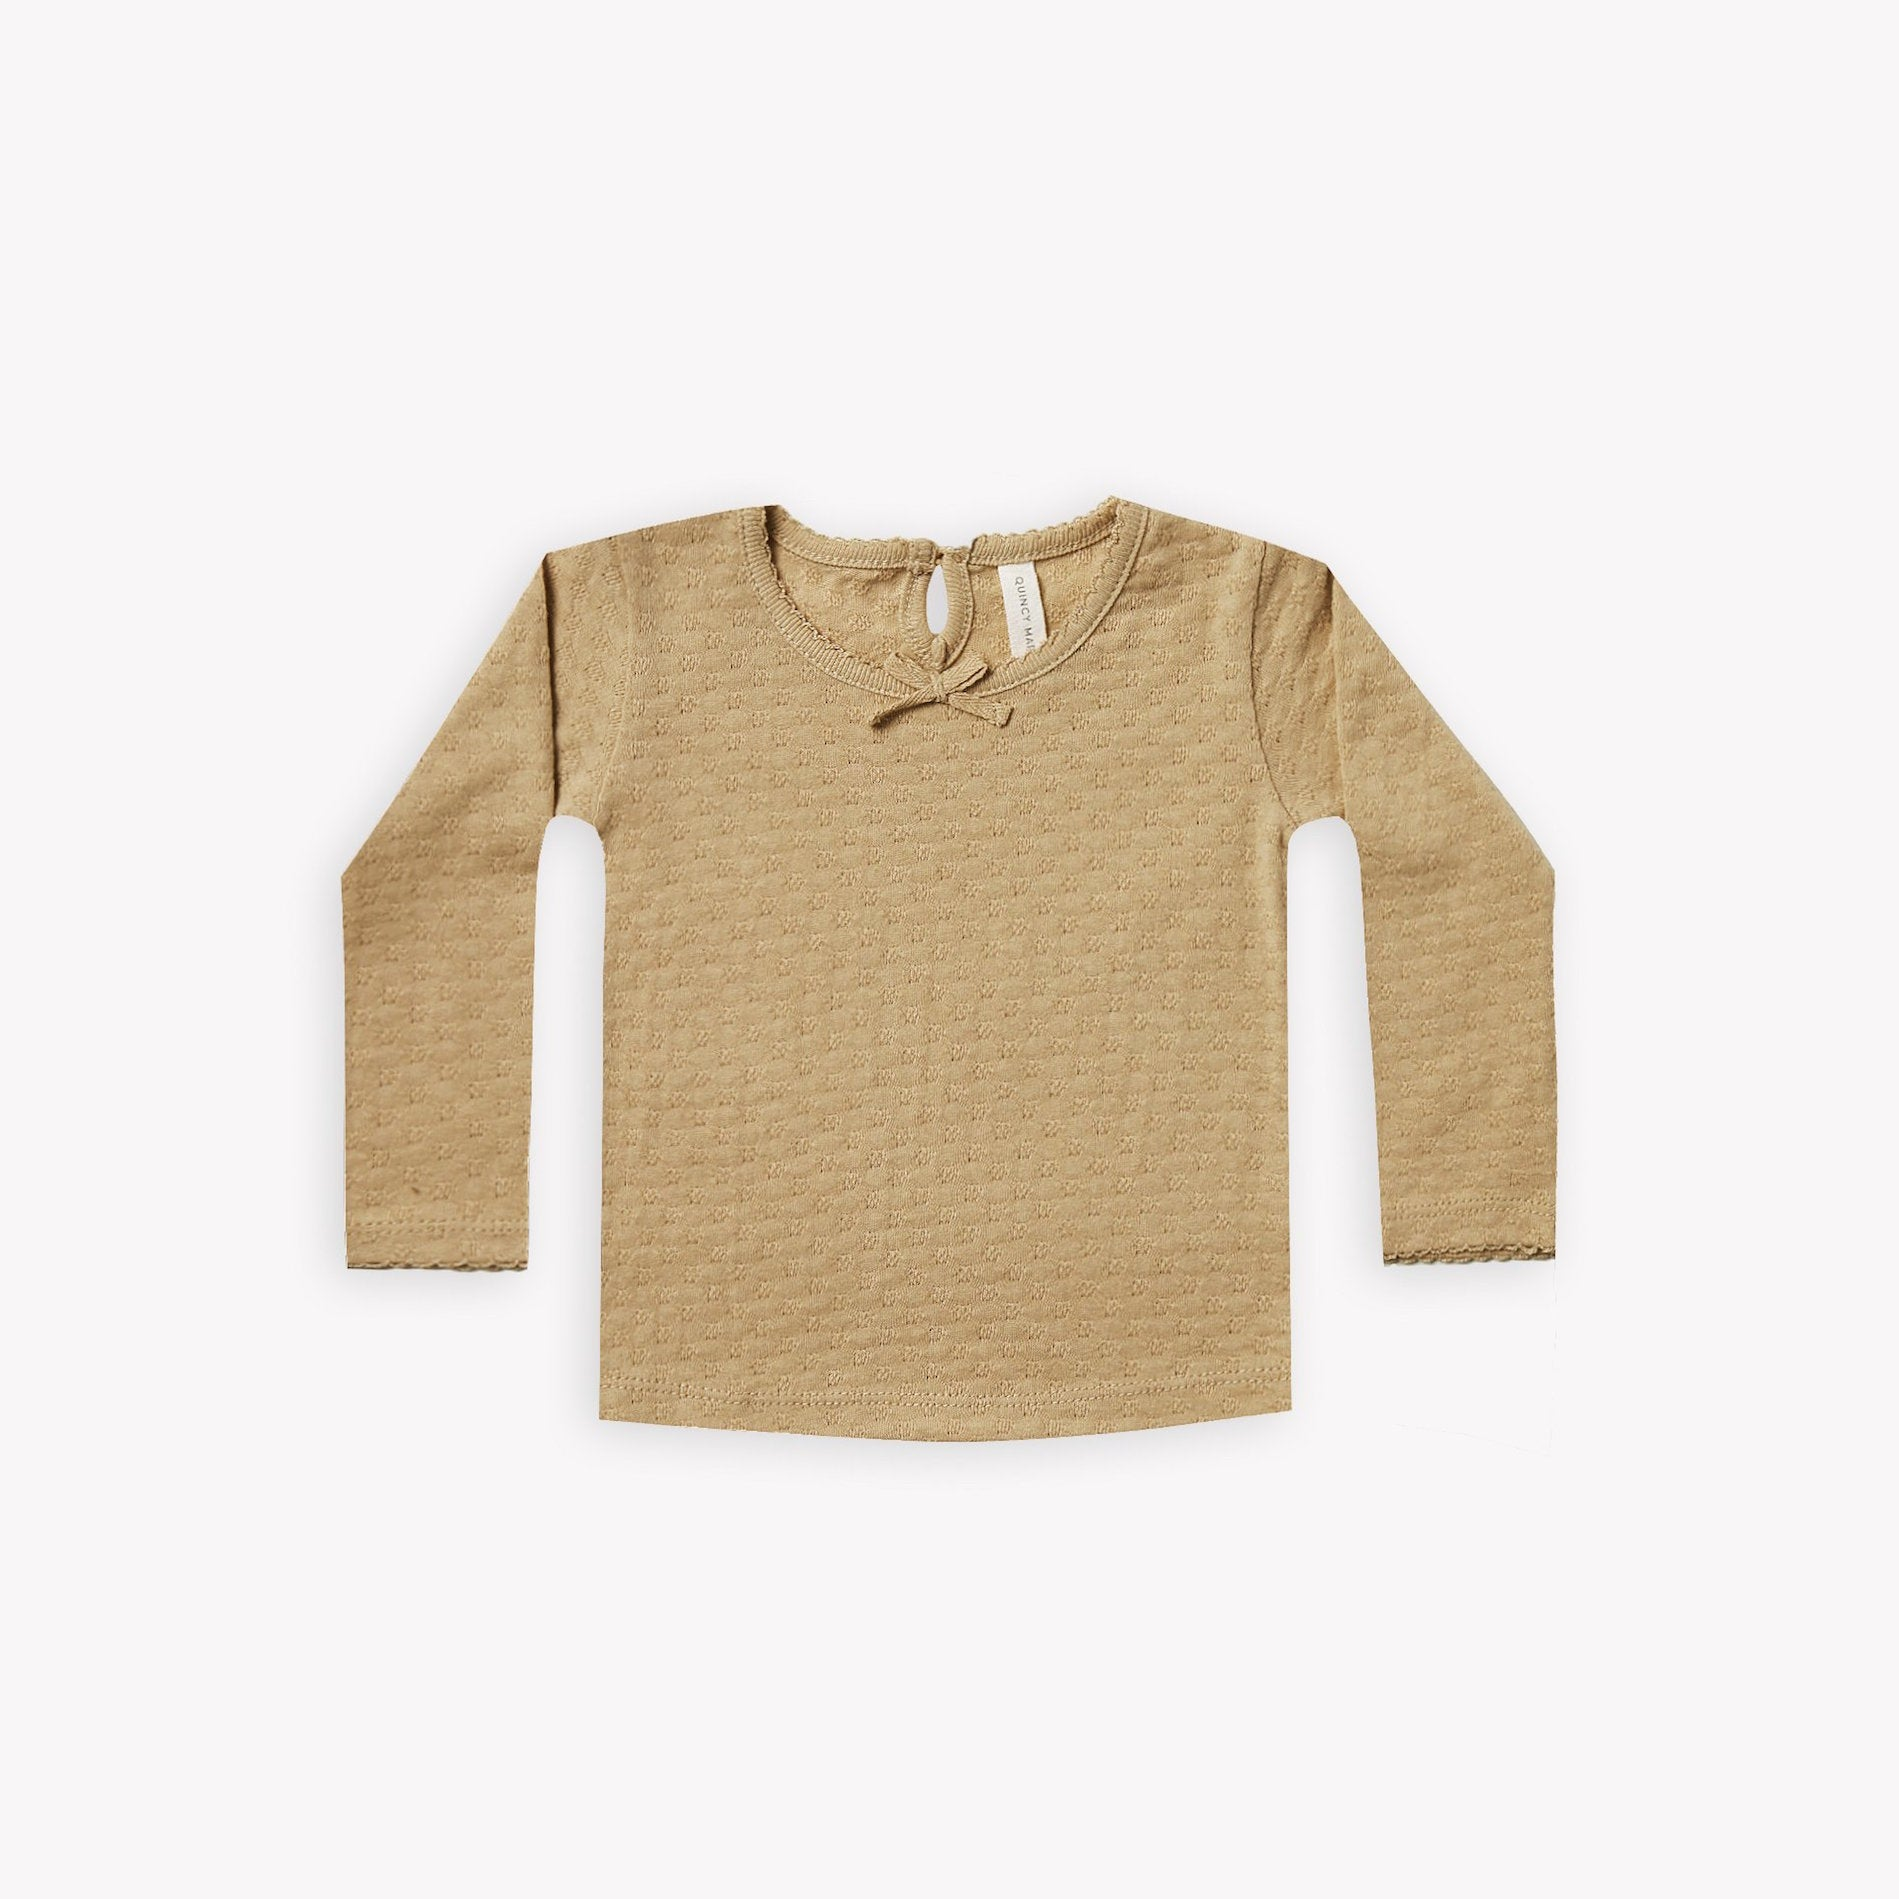 Quincy Mae longsleeve pointelle tee - honey